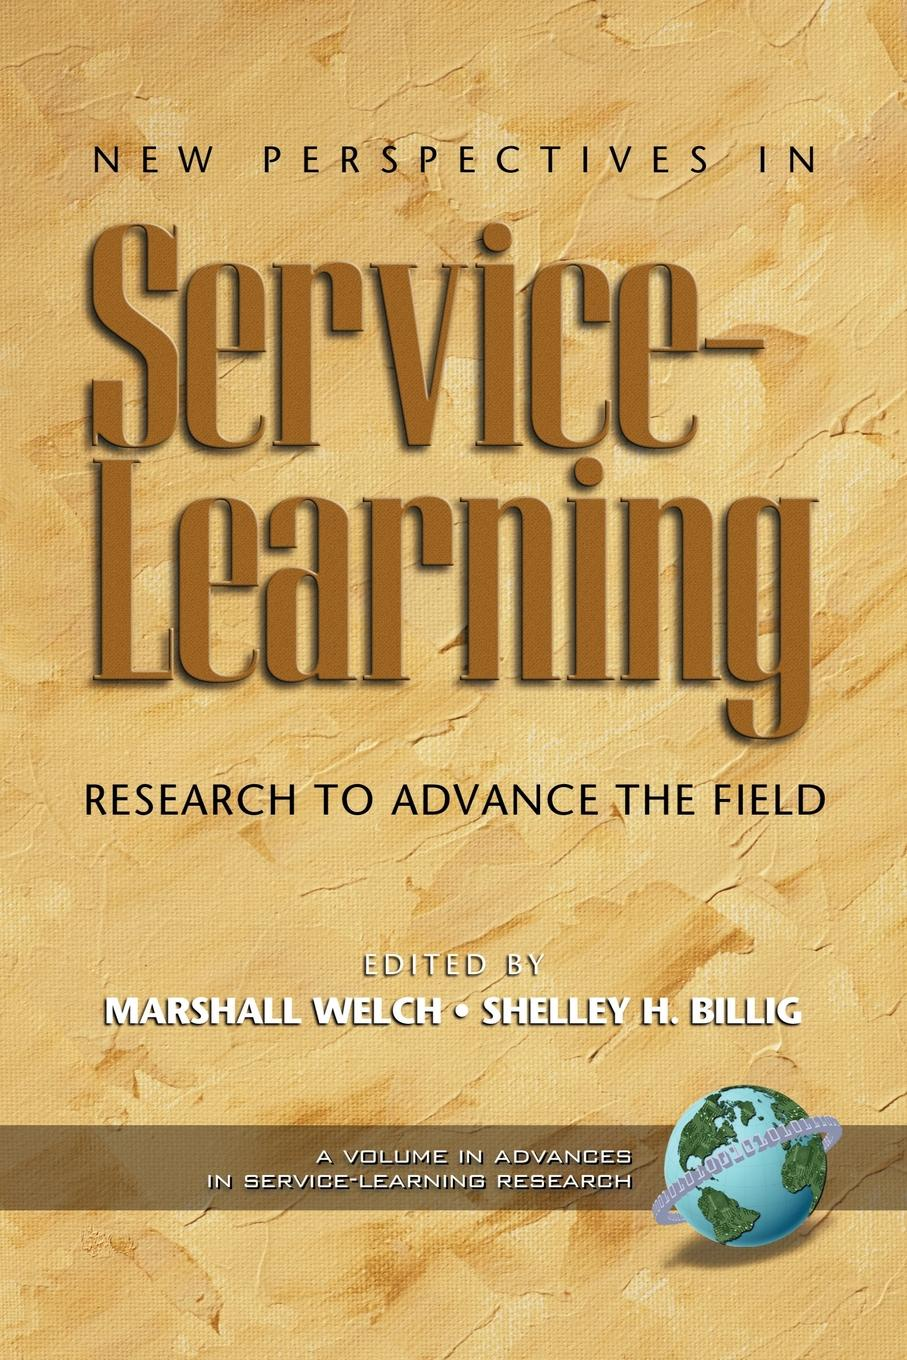 New Perspectives in Service-Learning. Research to Advnace the Field (PB)